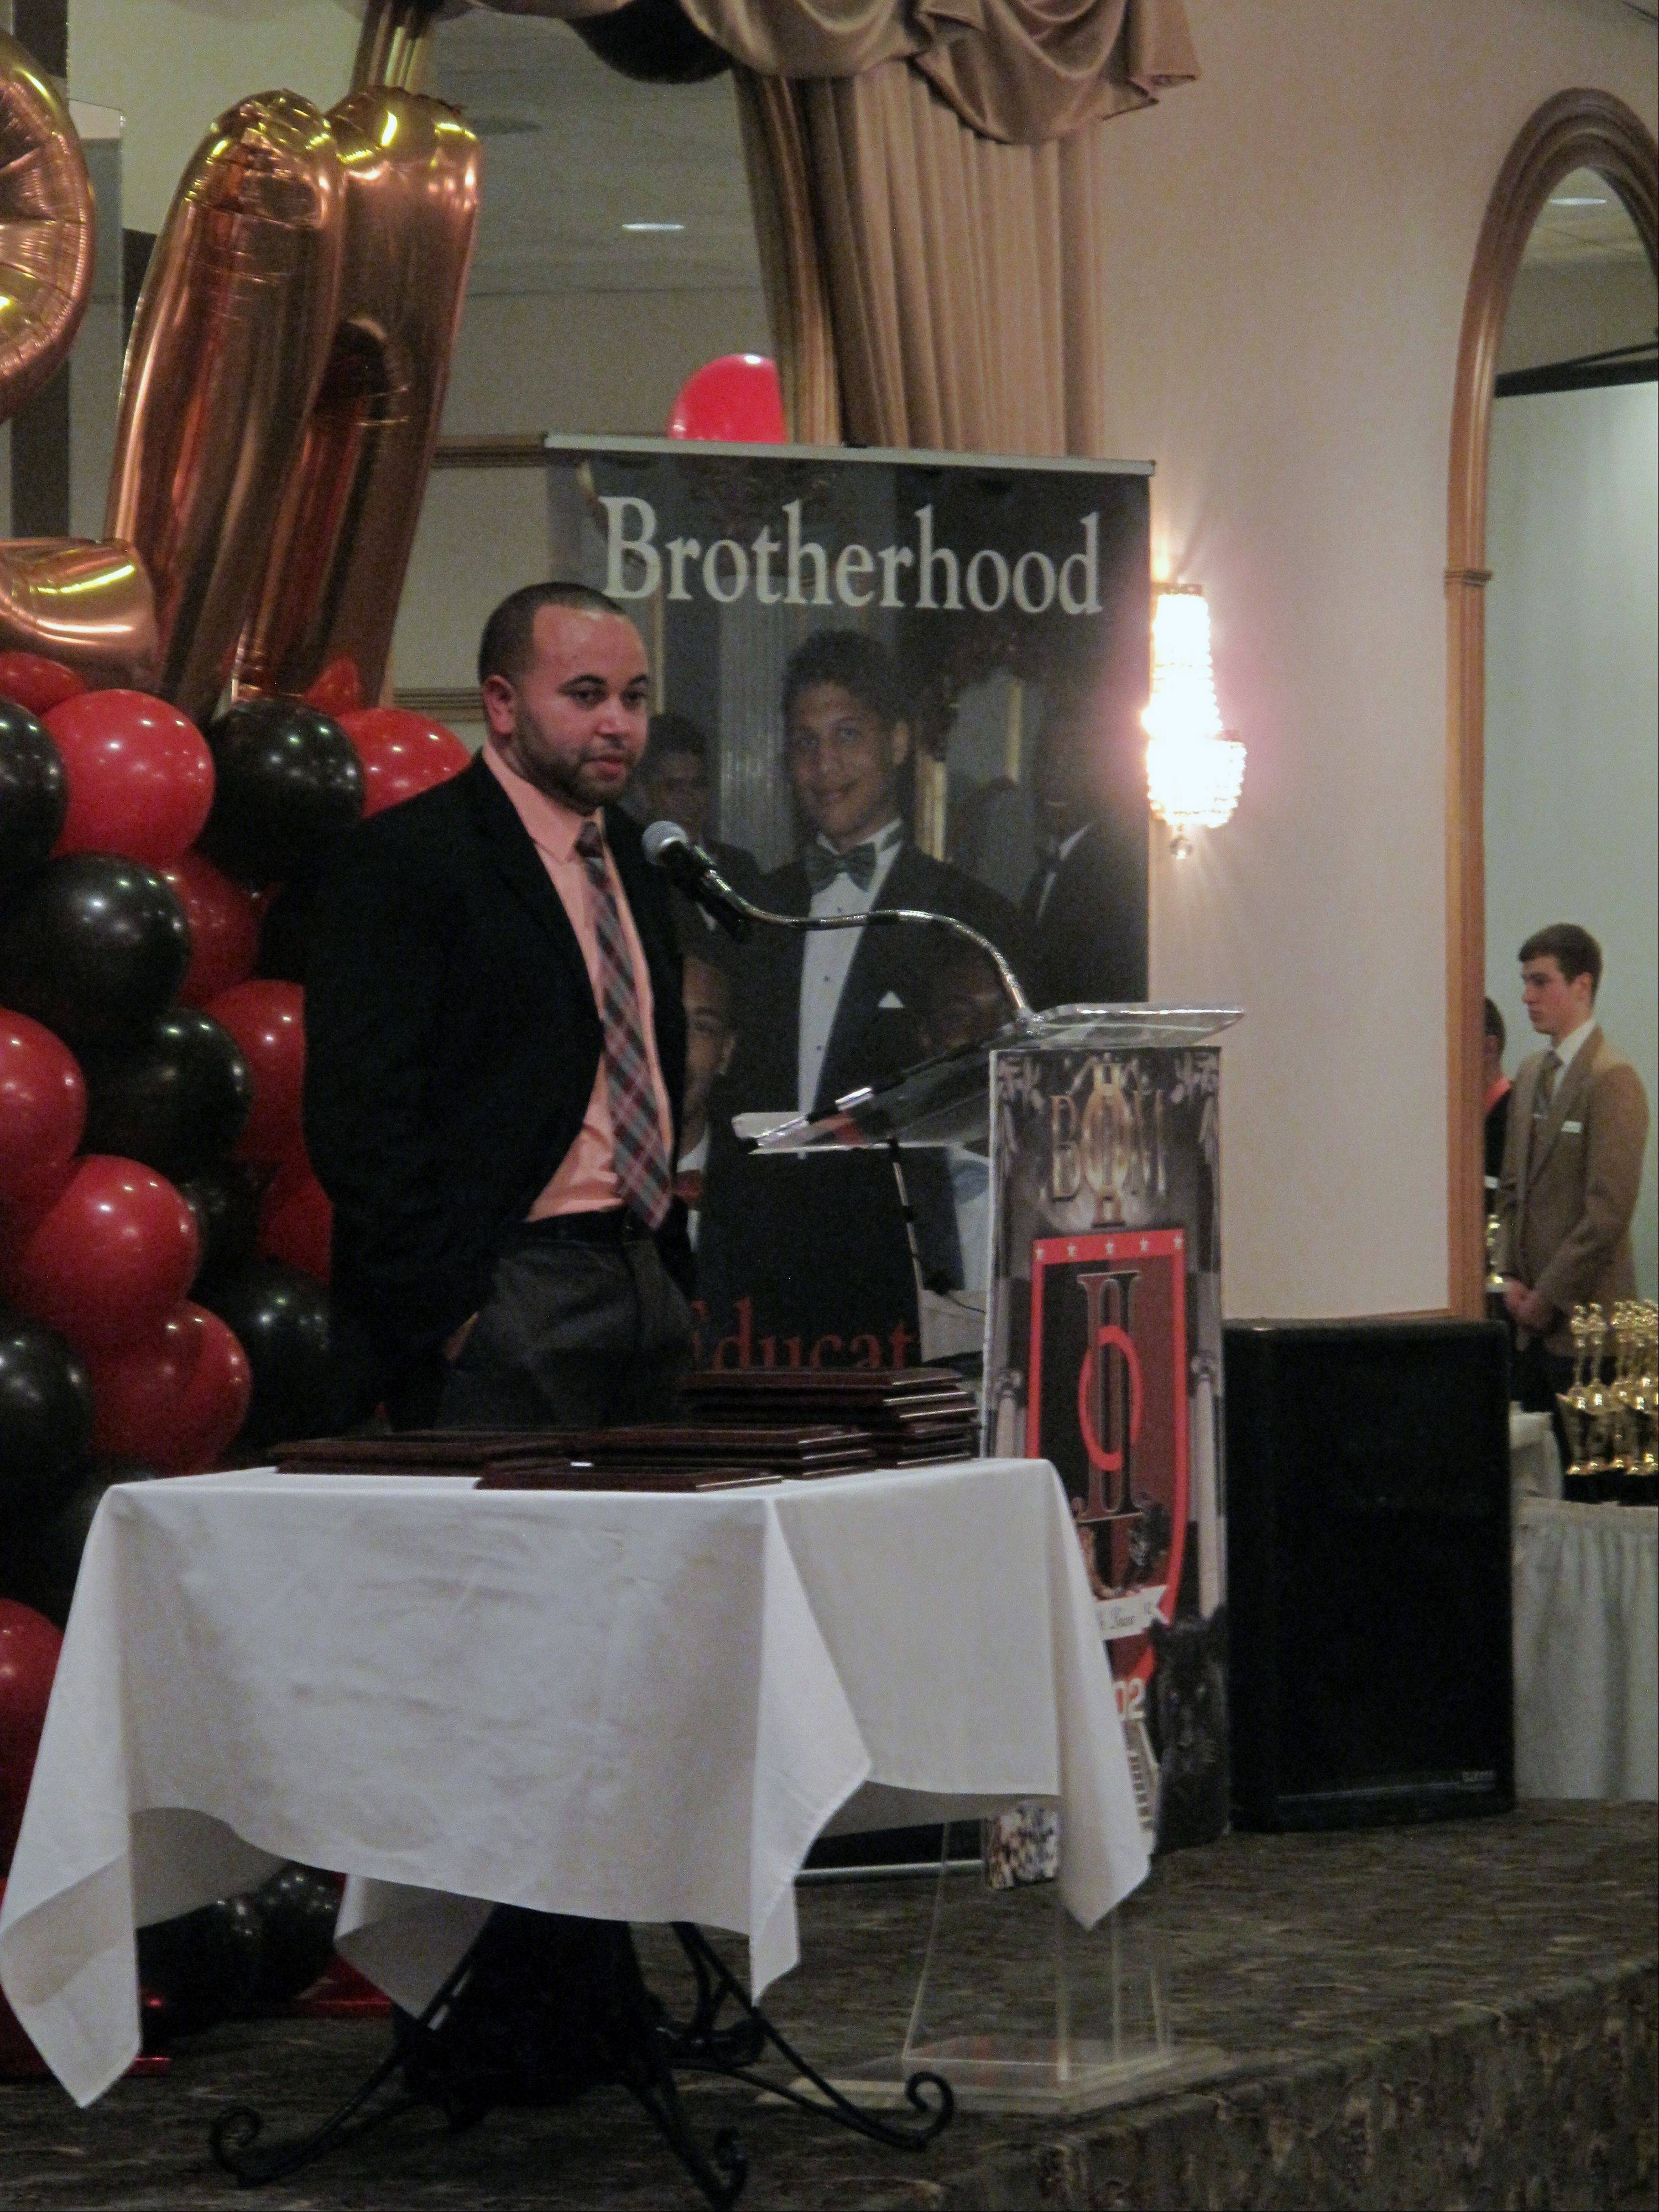 Jared Marchiando, the first president of the Boys II Men brotherhood in Aurora, is honored as one of the fraternity's 2013 Phenomenal Men of the Year. The brotherhood has included more than 200 members since Marchiando was among its 12 founding members in 2002.